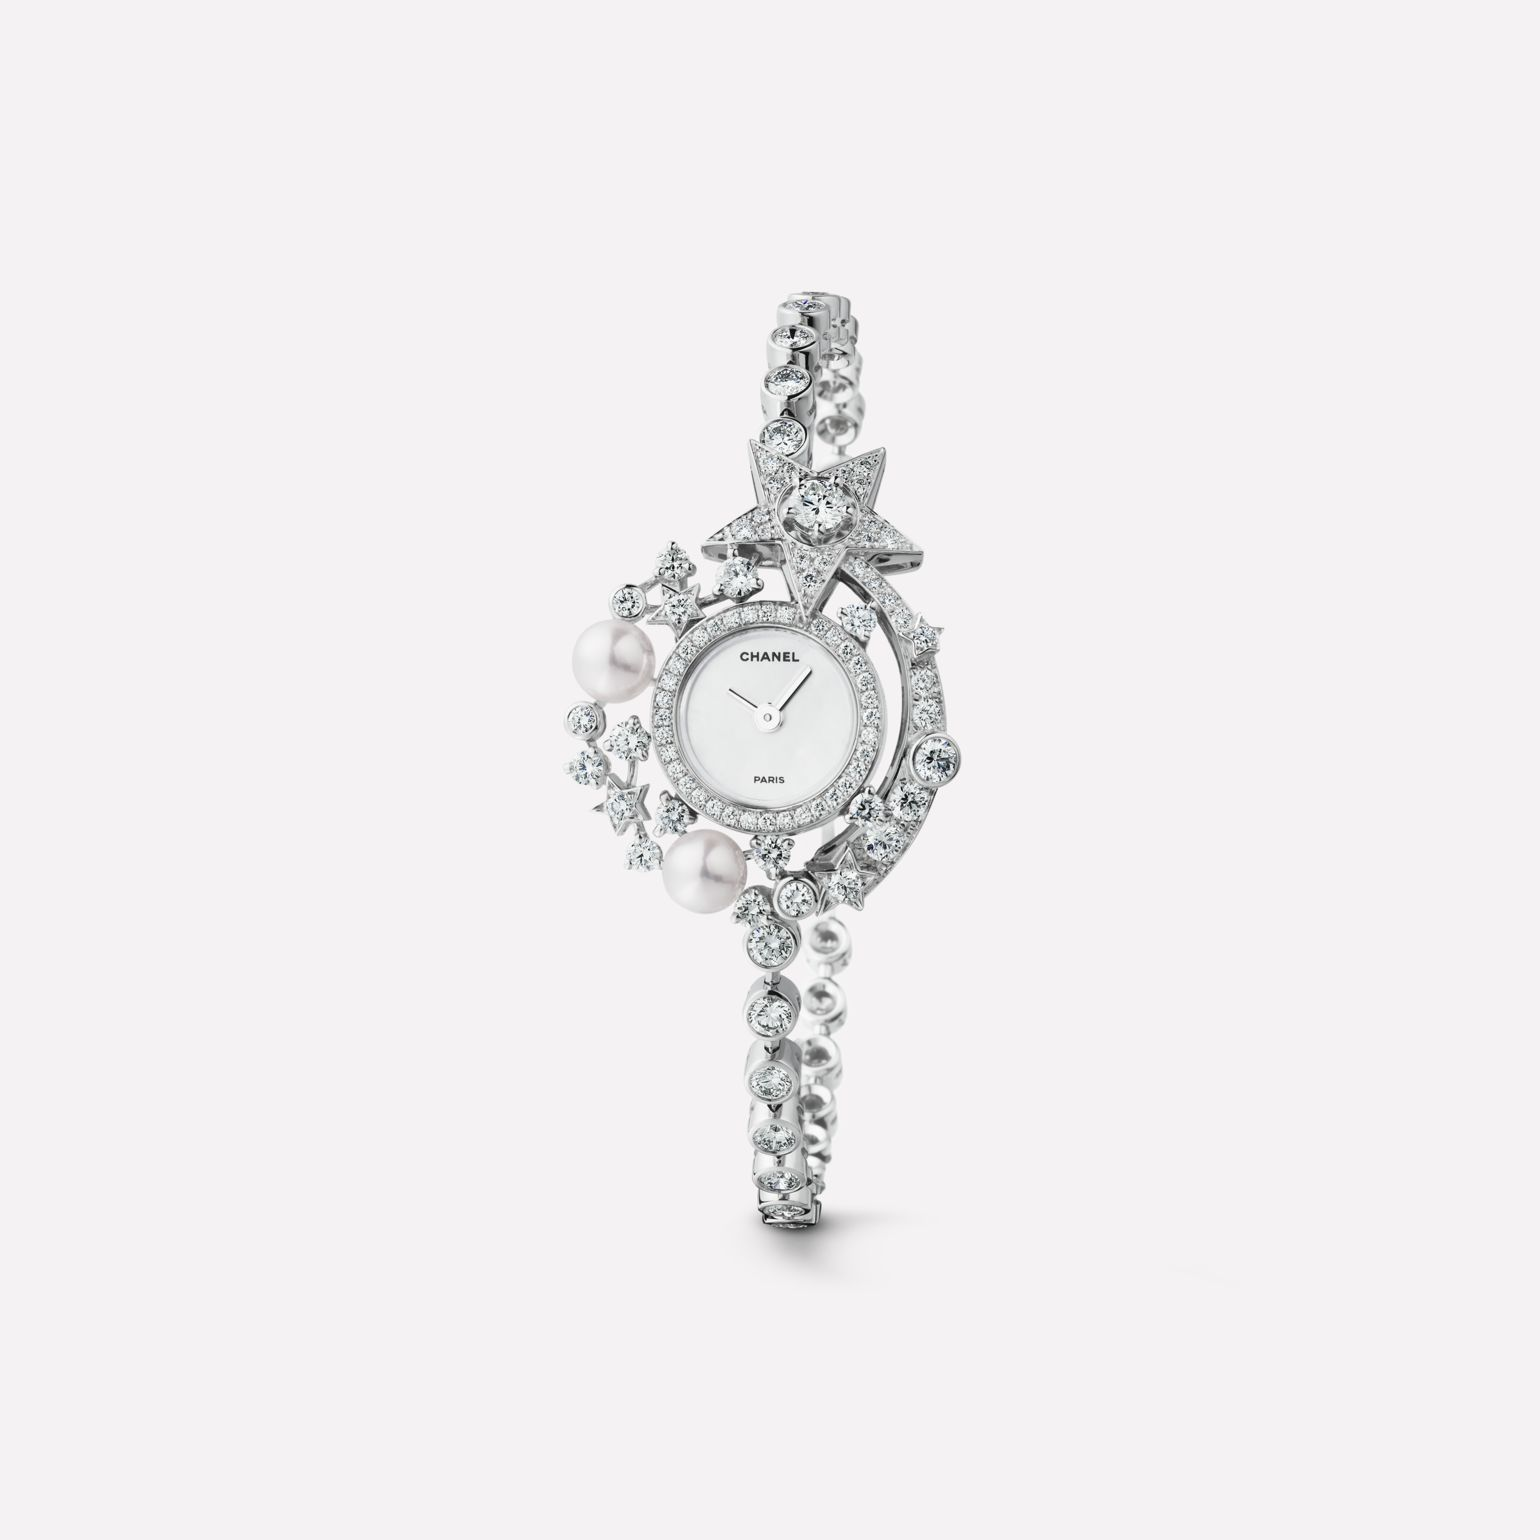 Comète Jewellery Watch Star motif in 18K white gold, cultured pearls and diamonds